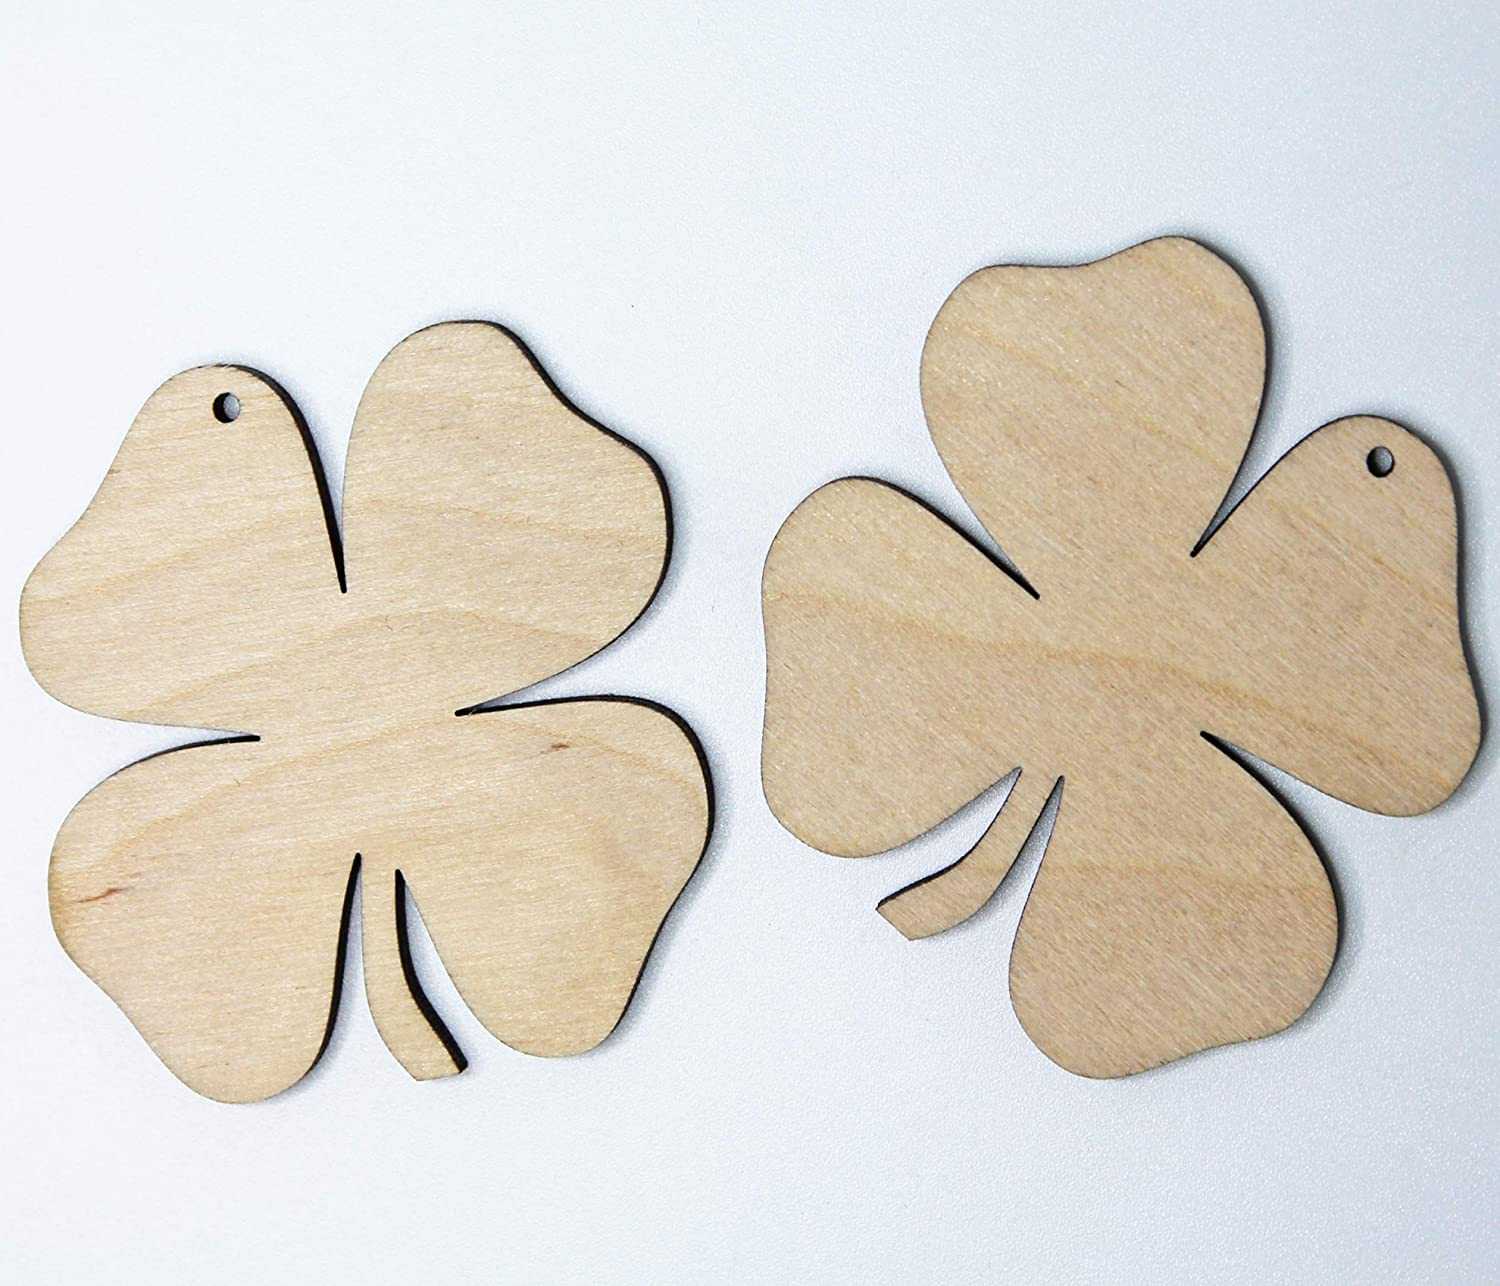 Unfinished Wood Wooden Shamrock Laser Cutout Dangle Earring Jewelry Blanks Charms Ornaments Shape Crafts Made in Texas 12pc to 100pc ALL SIZES BULK